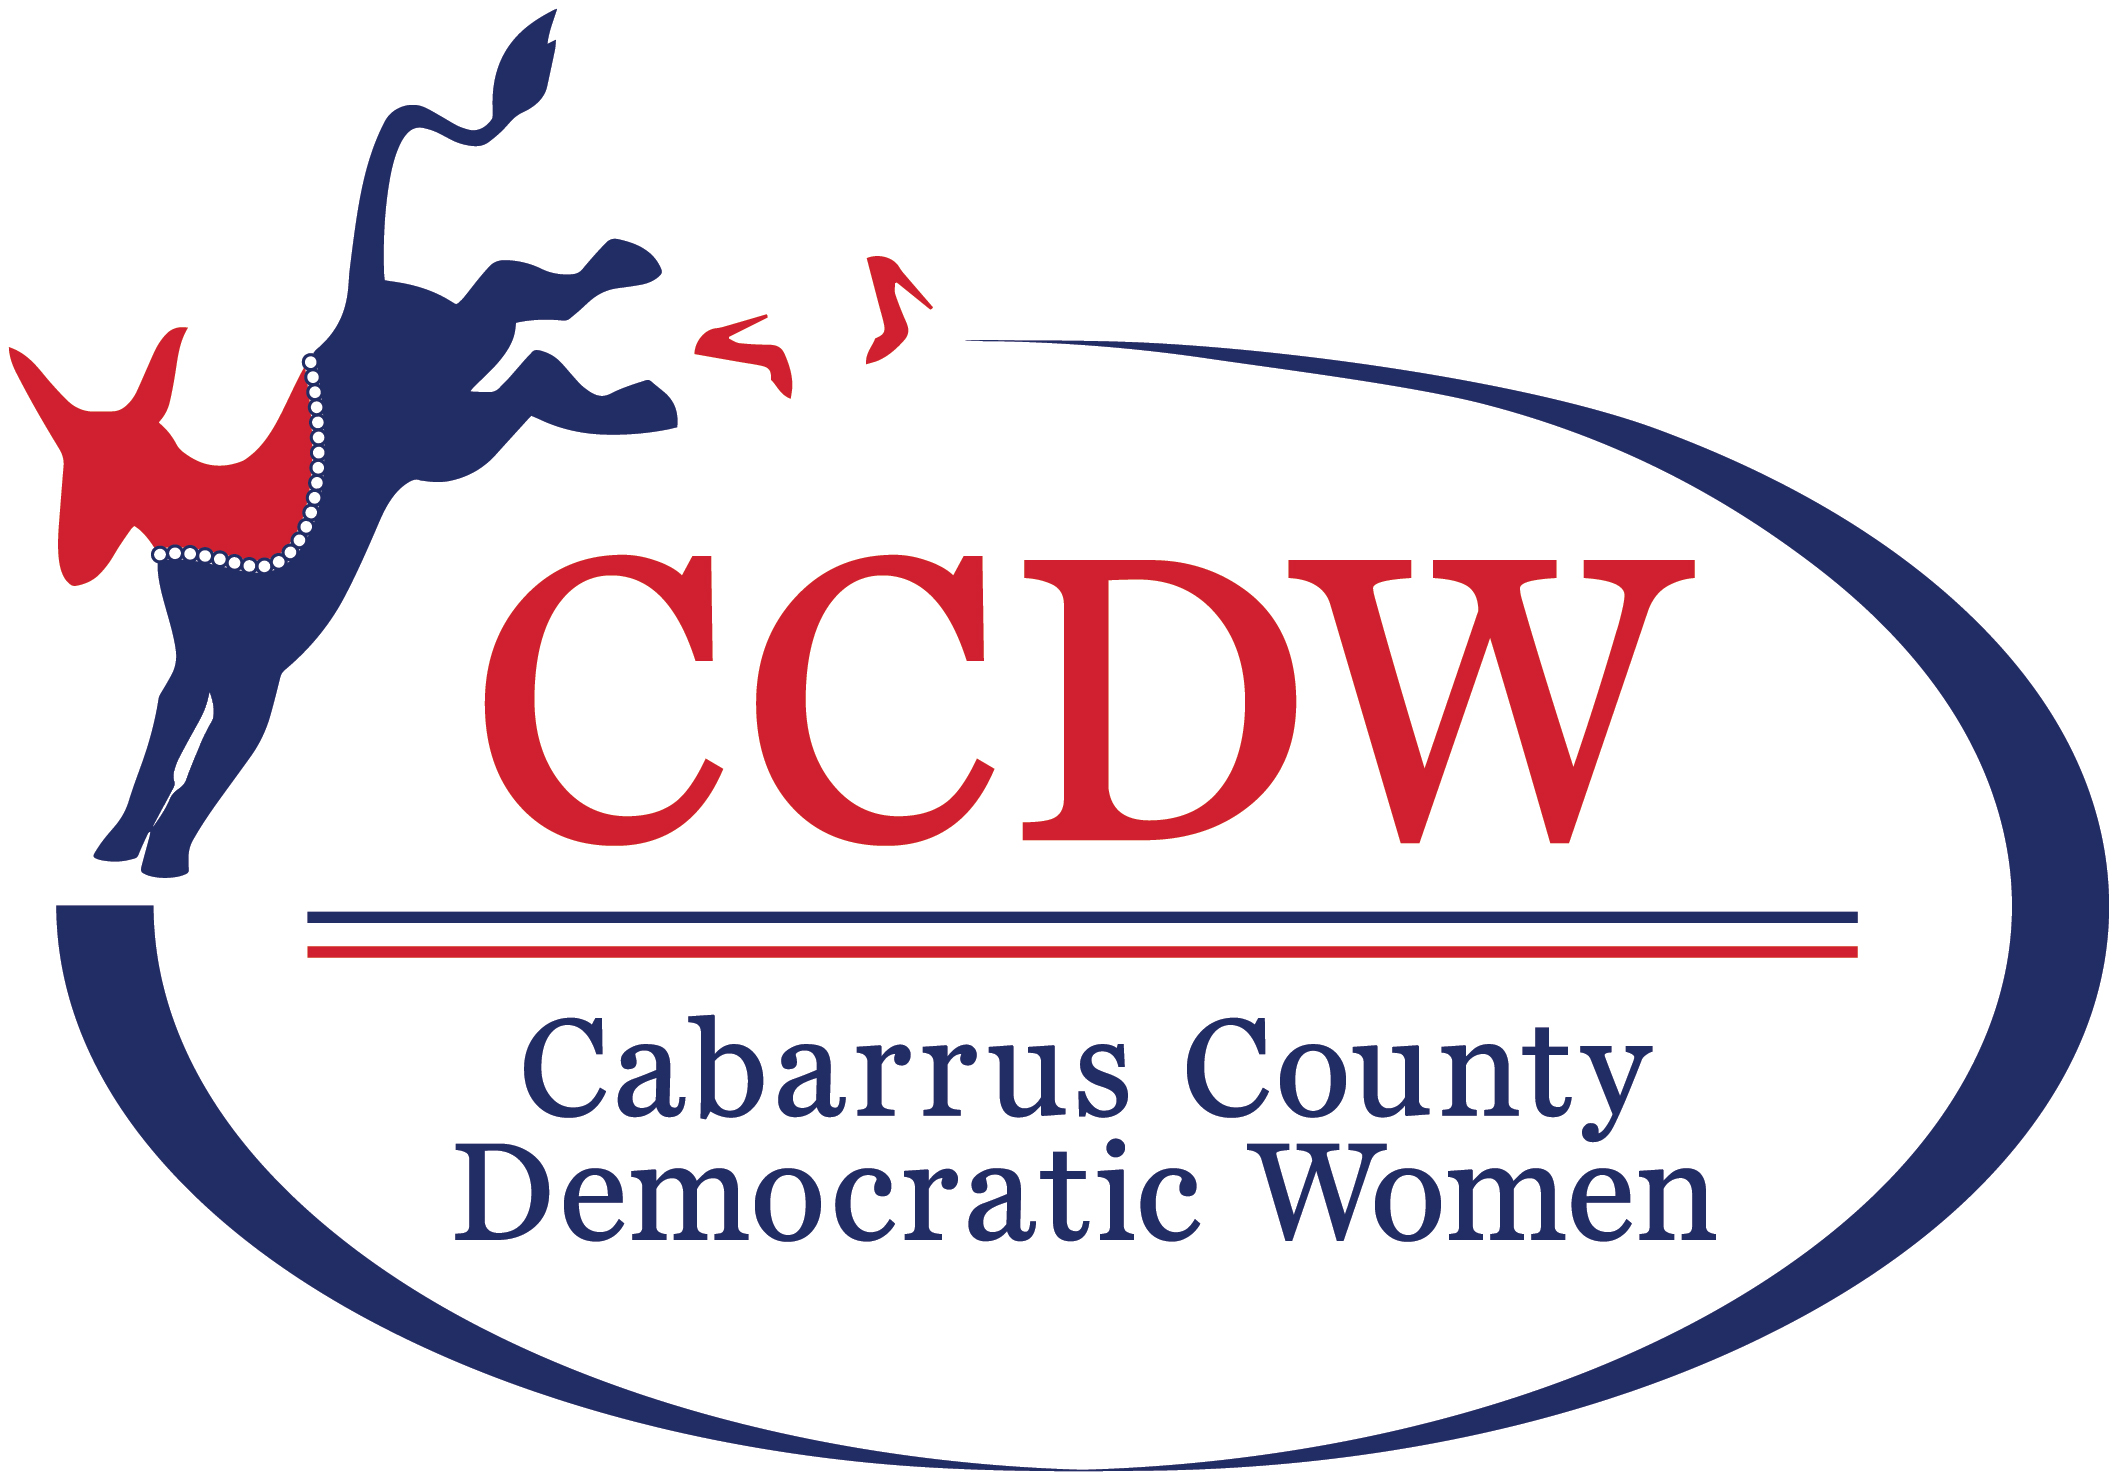 Cabarrus County Democratic Women